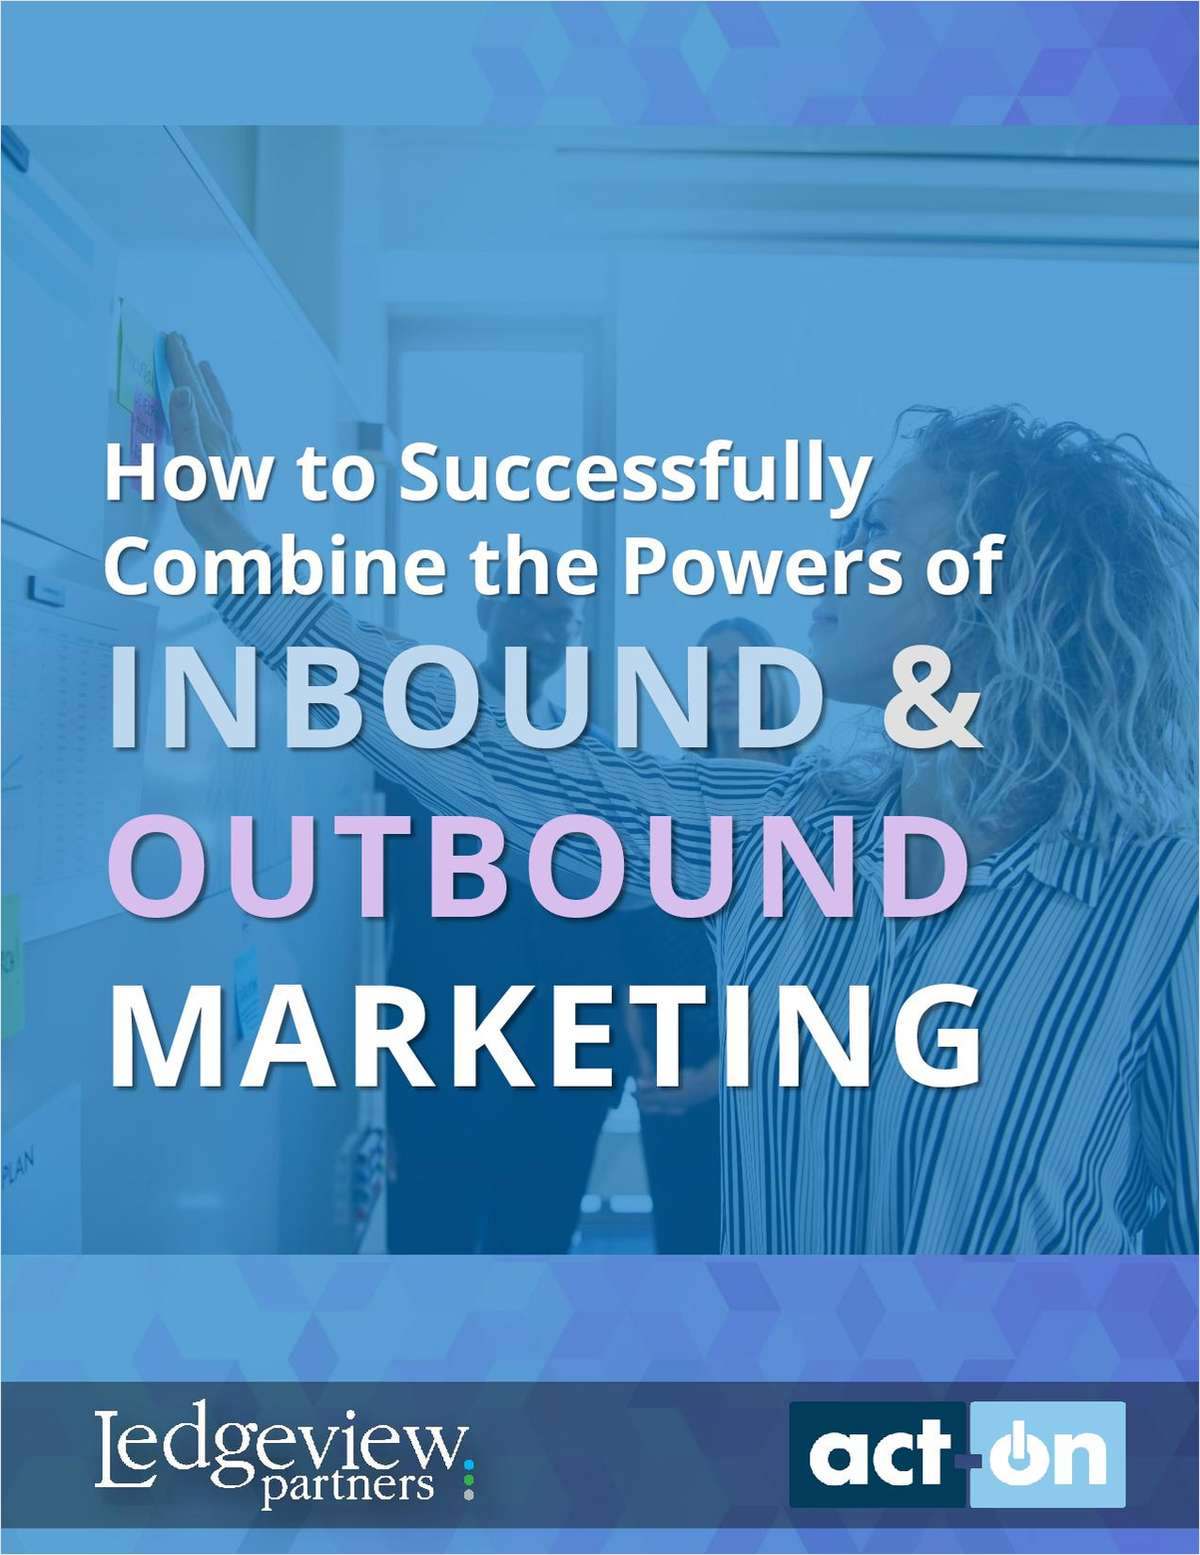 How to Successfully Combine the Powers of Inbound and Outbound Marketing